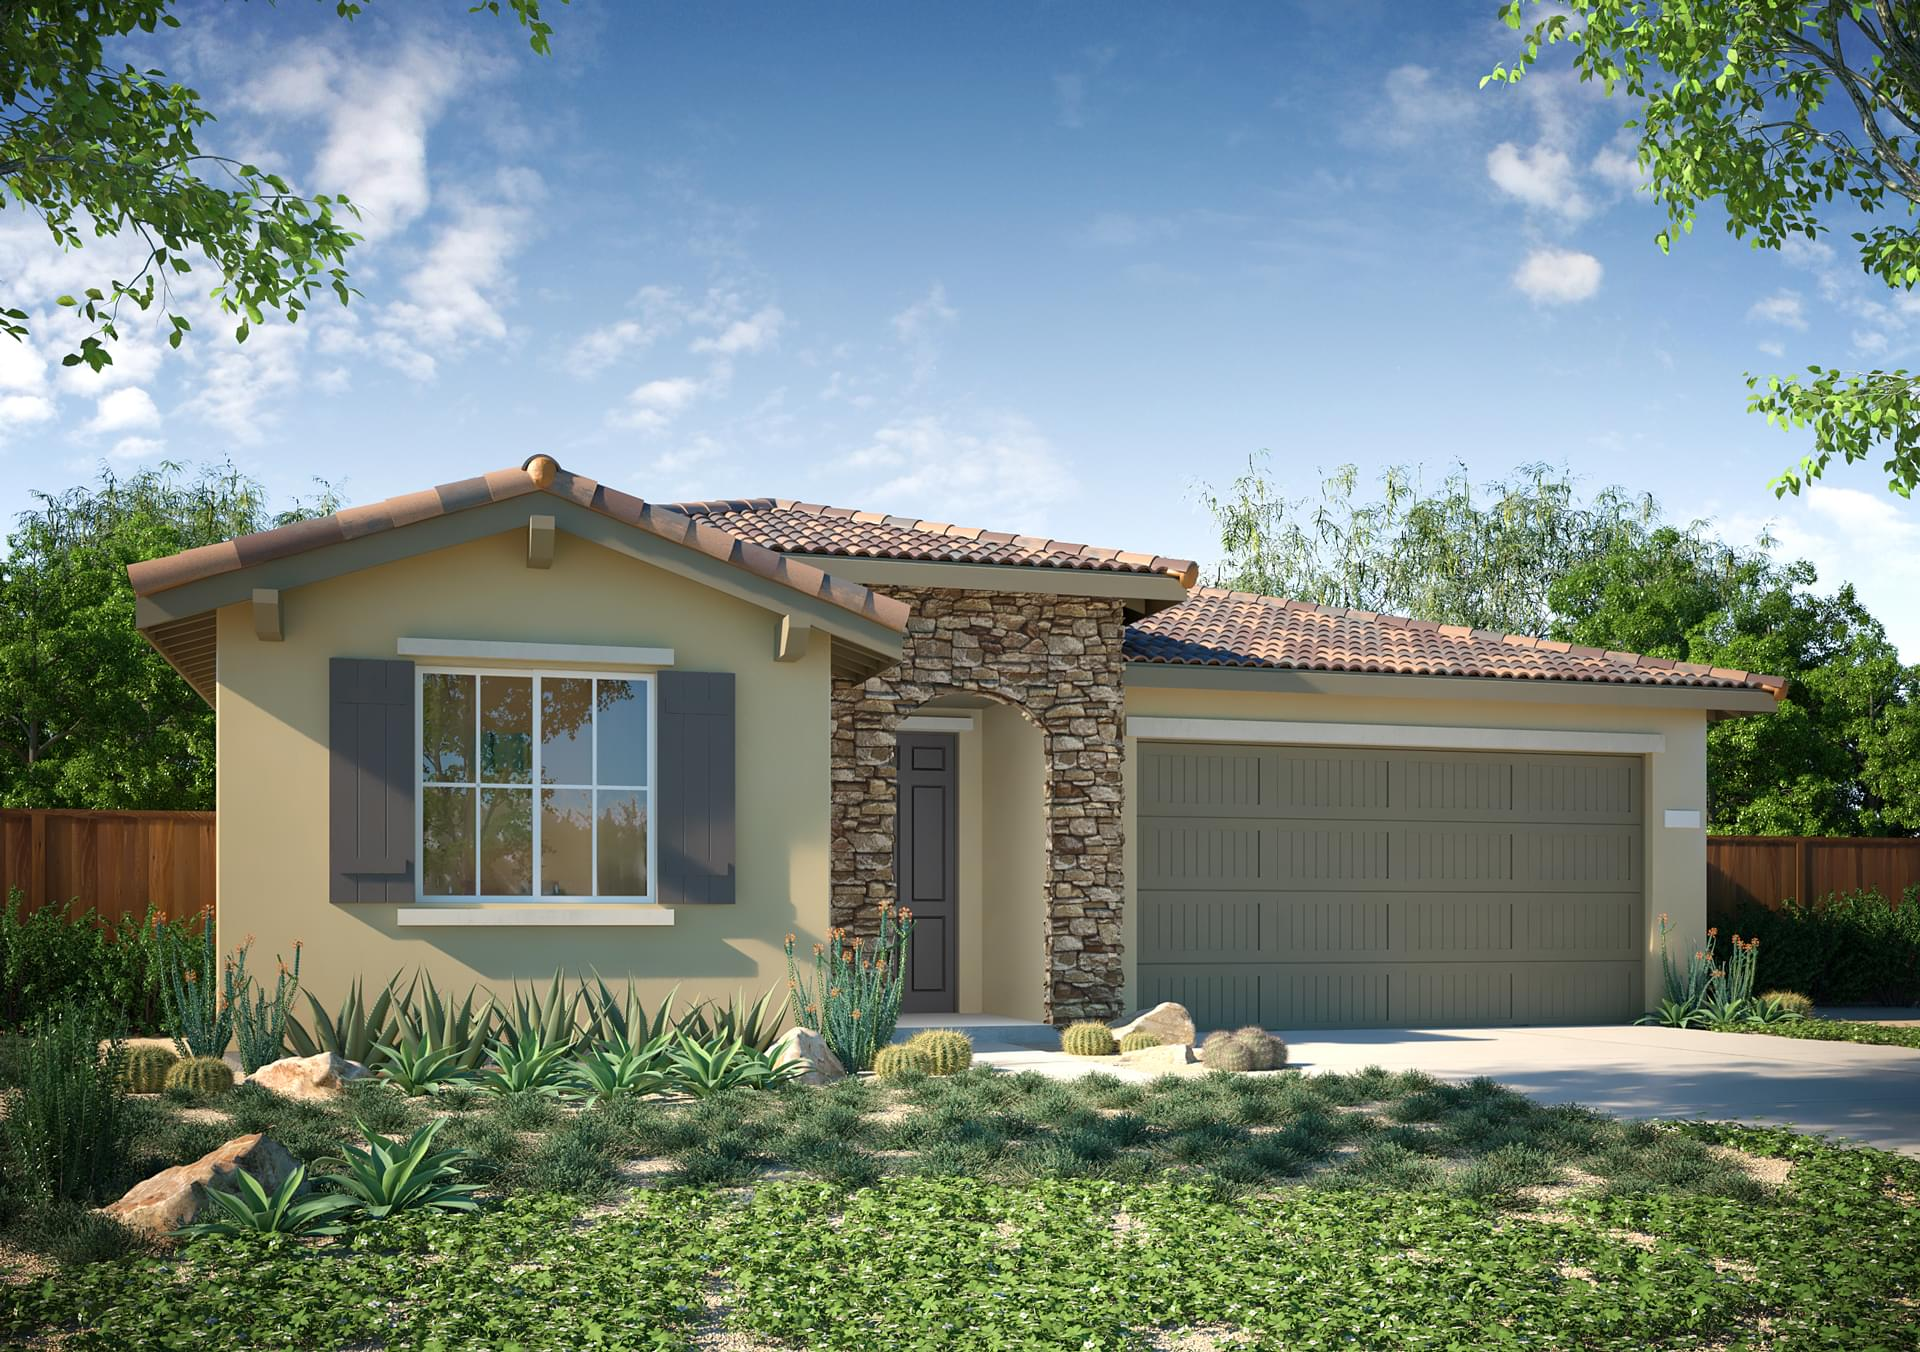 505 Tananger Heights Court in Pleasant Hill , CA by DeNova Homes